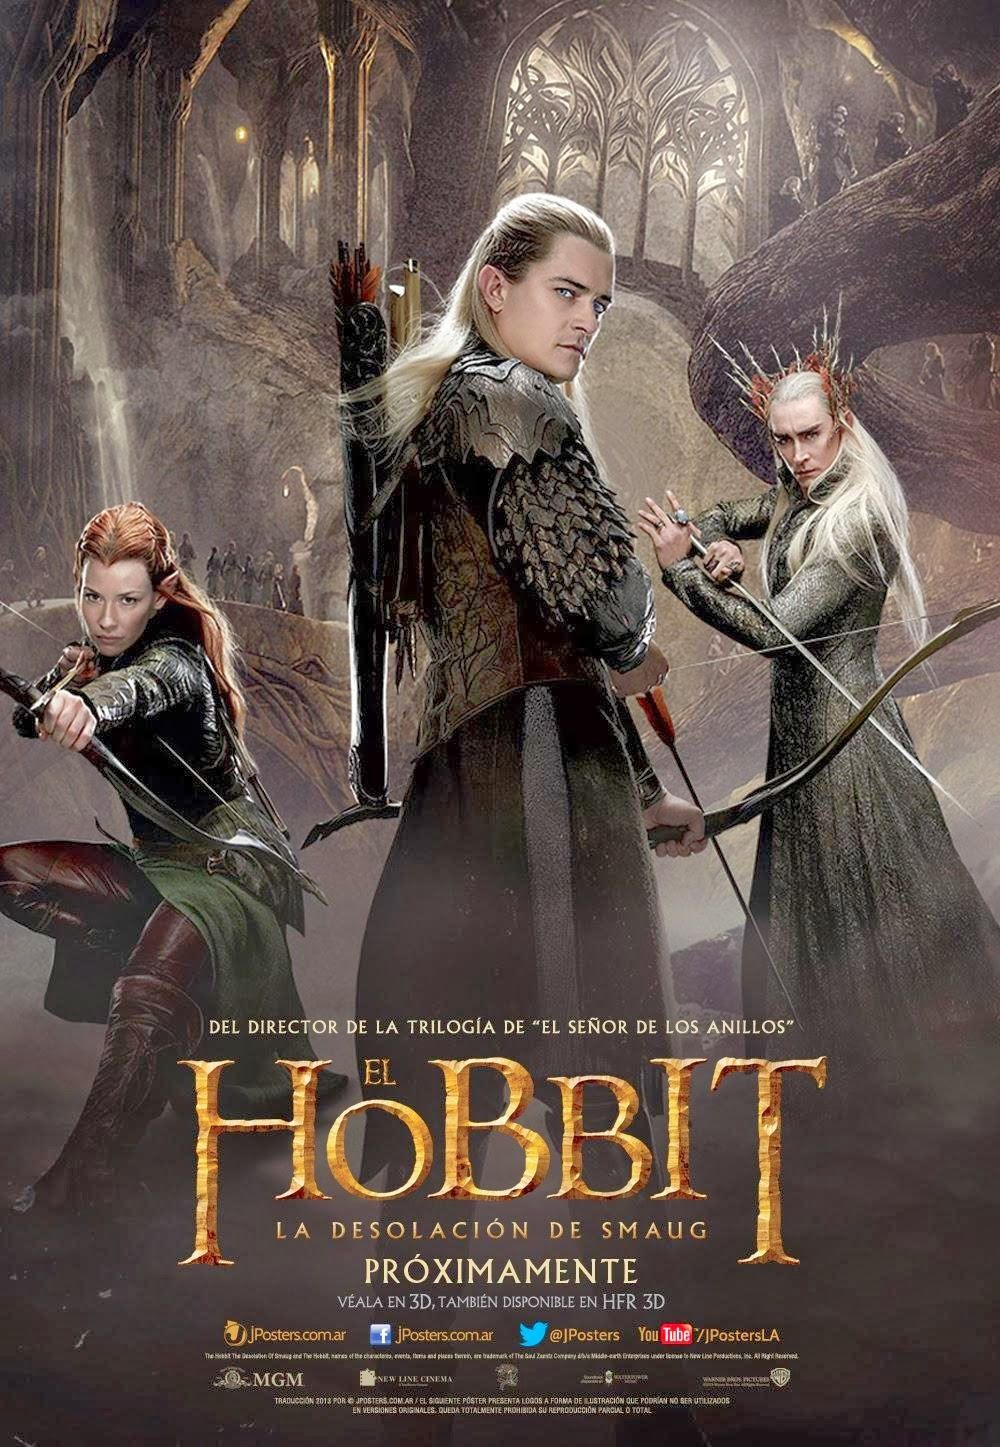 The Hobbit The Desolation Of Smaug 2013 720p The Hobbit Movies Desolation Of Smaug Hobbit Poster